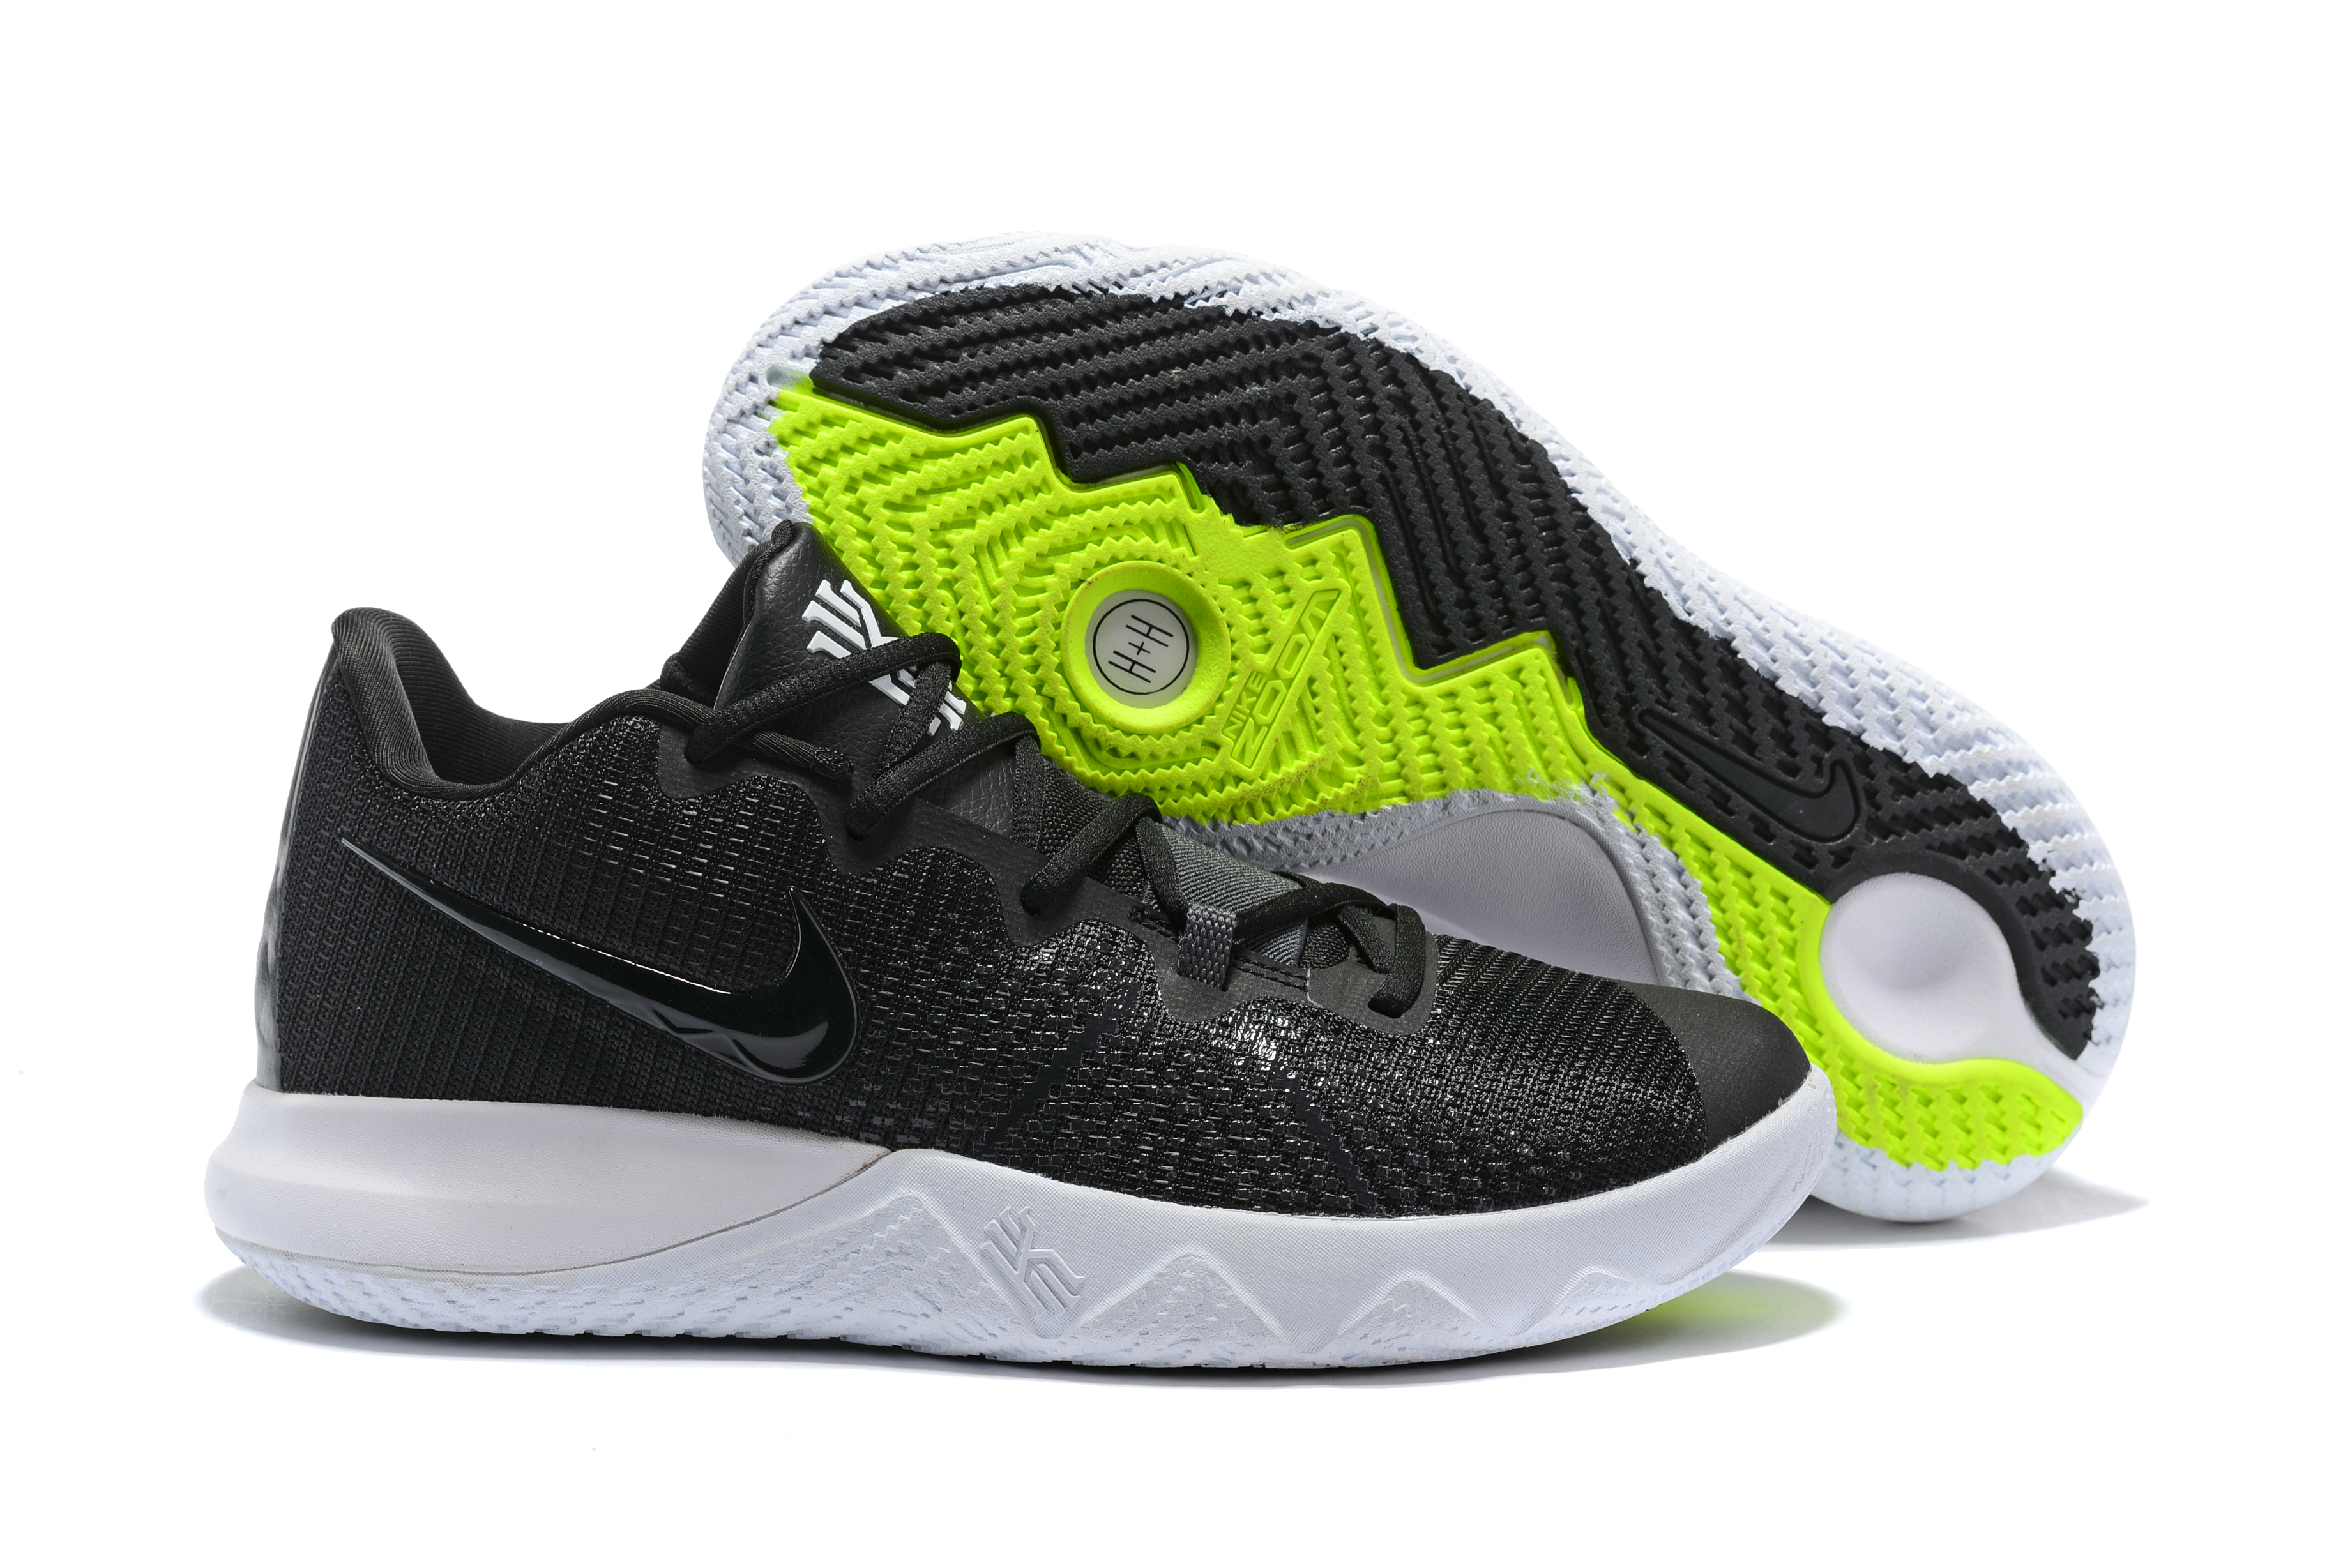 Nike Kyrie Flytrap Black White Shoes